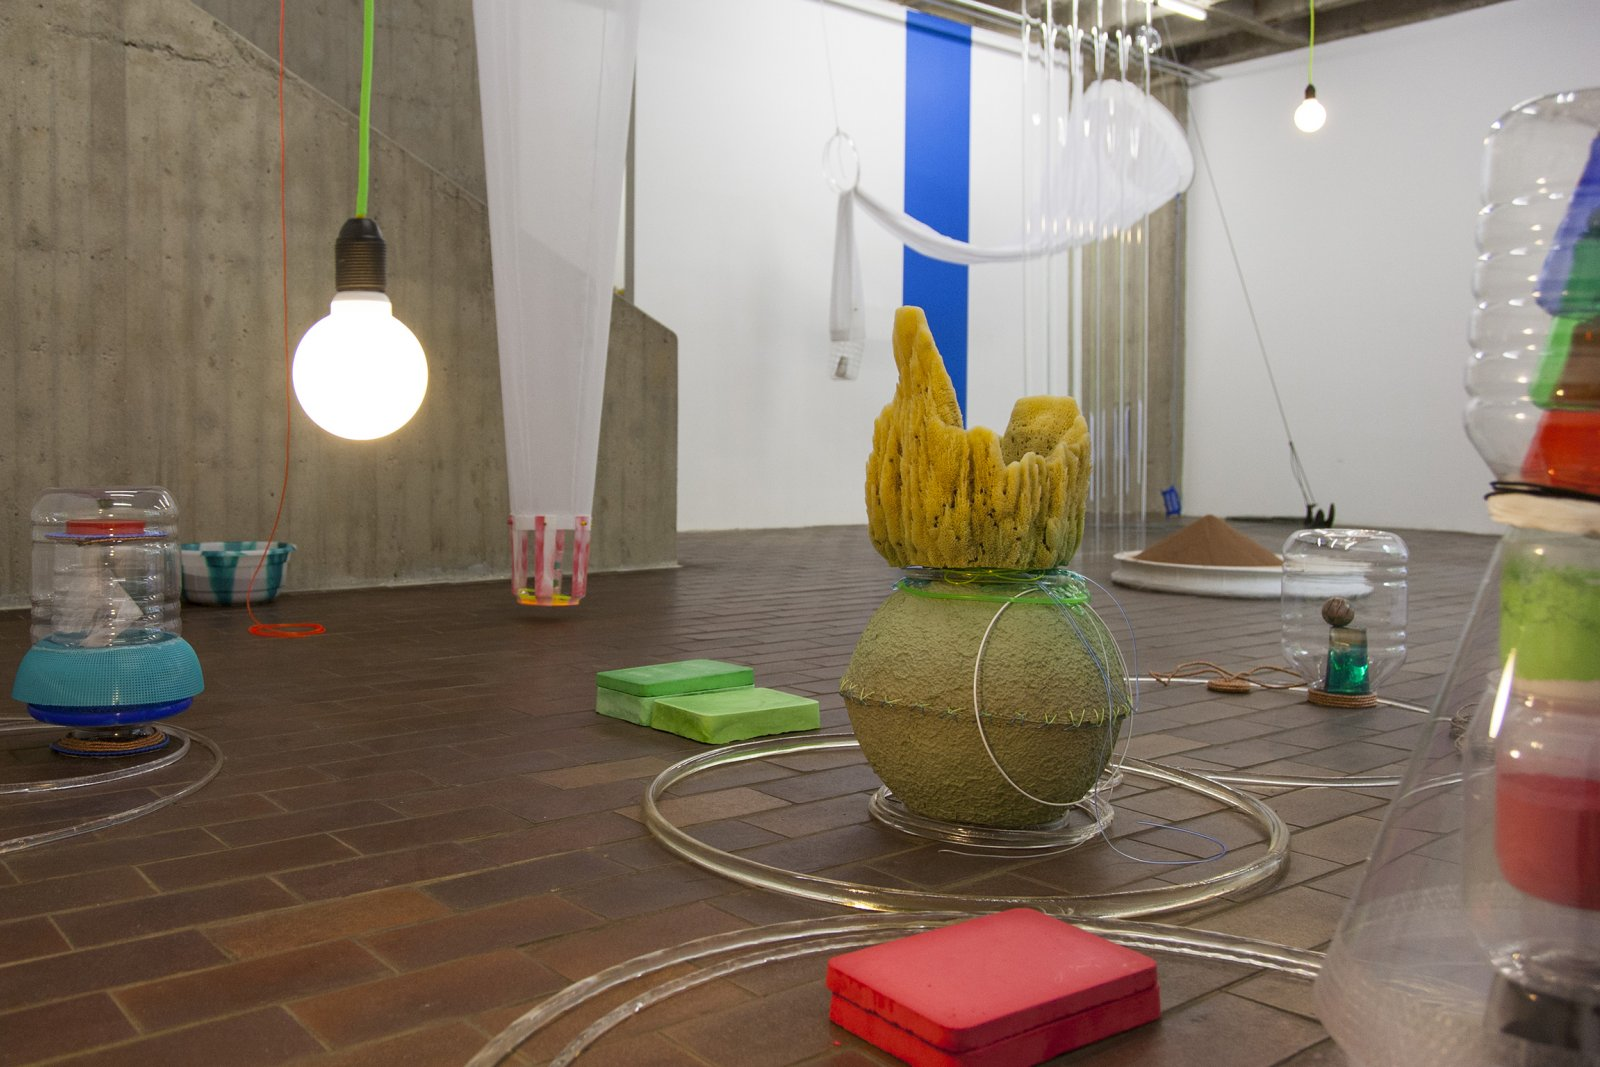 ​Christina Mackie, Sketch for Drop, 2014, mixed media, dimensions variable. Installation view, ​Drop​, PRAXES, Berlin, 2014 by Christina Mackie